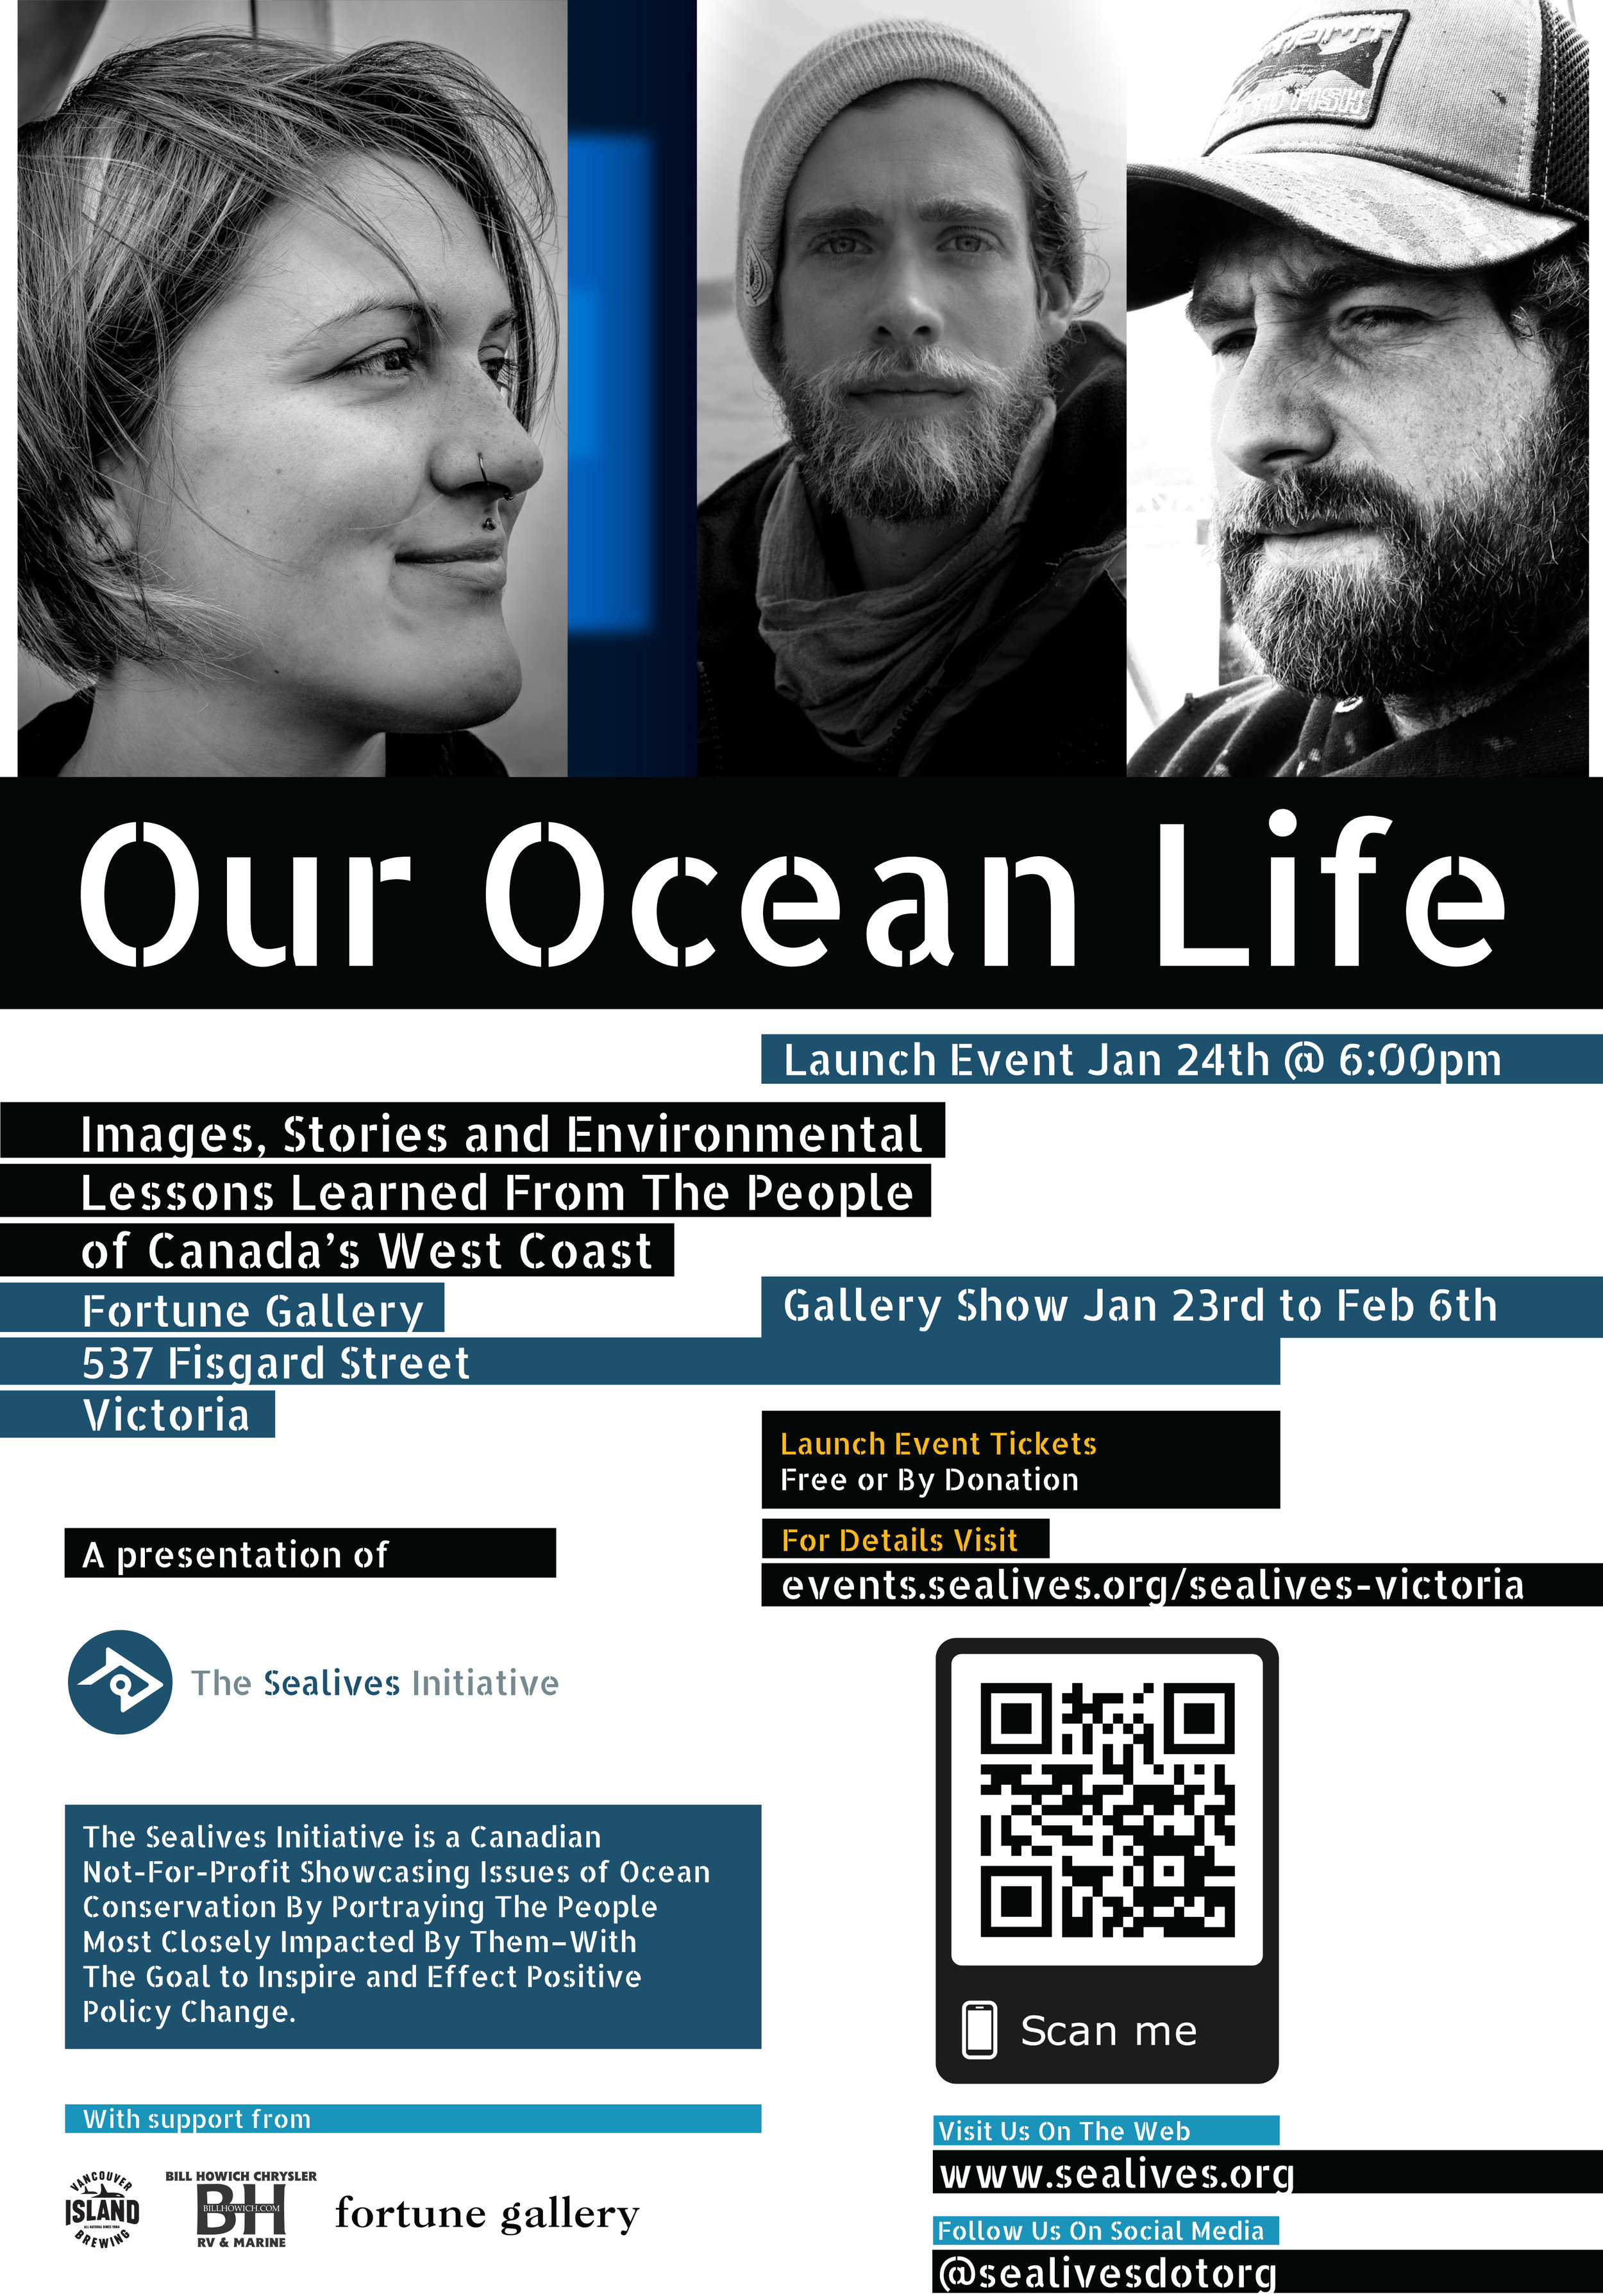 Sealives-victoria-eventposter-sponsors.jpg